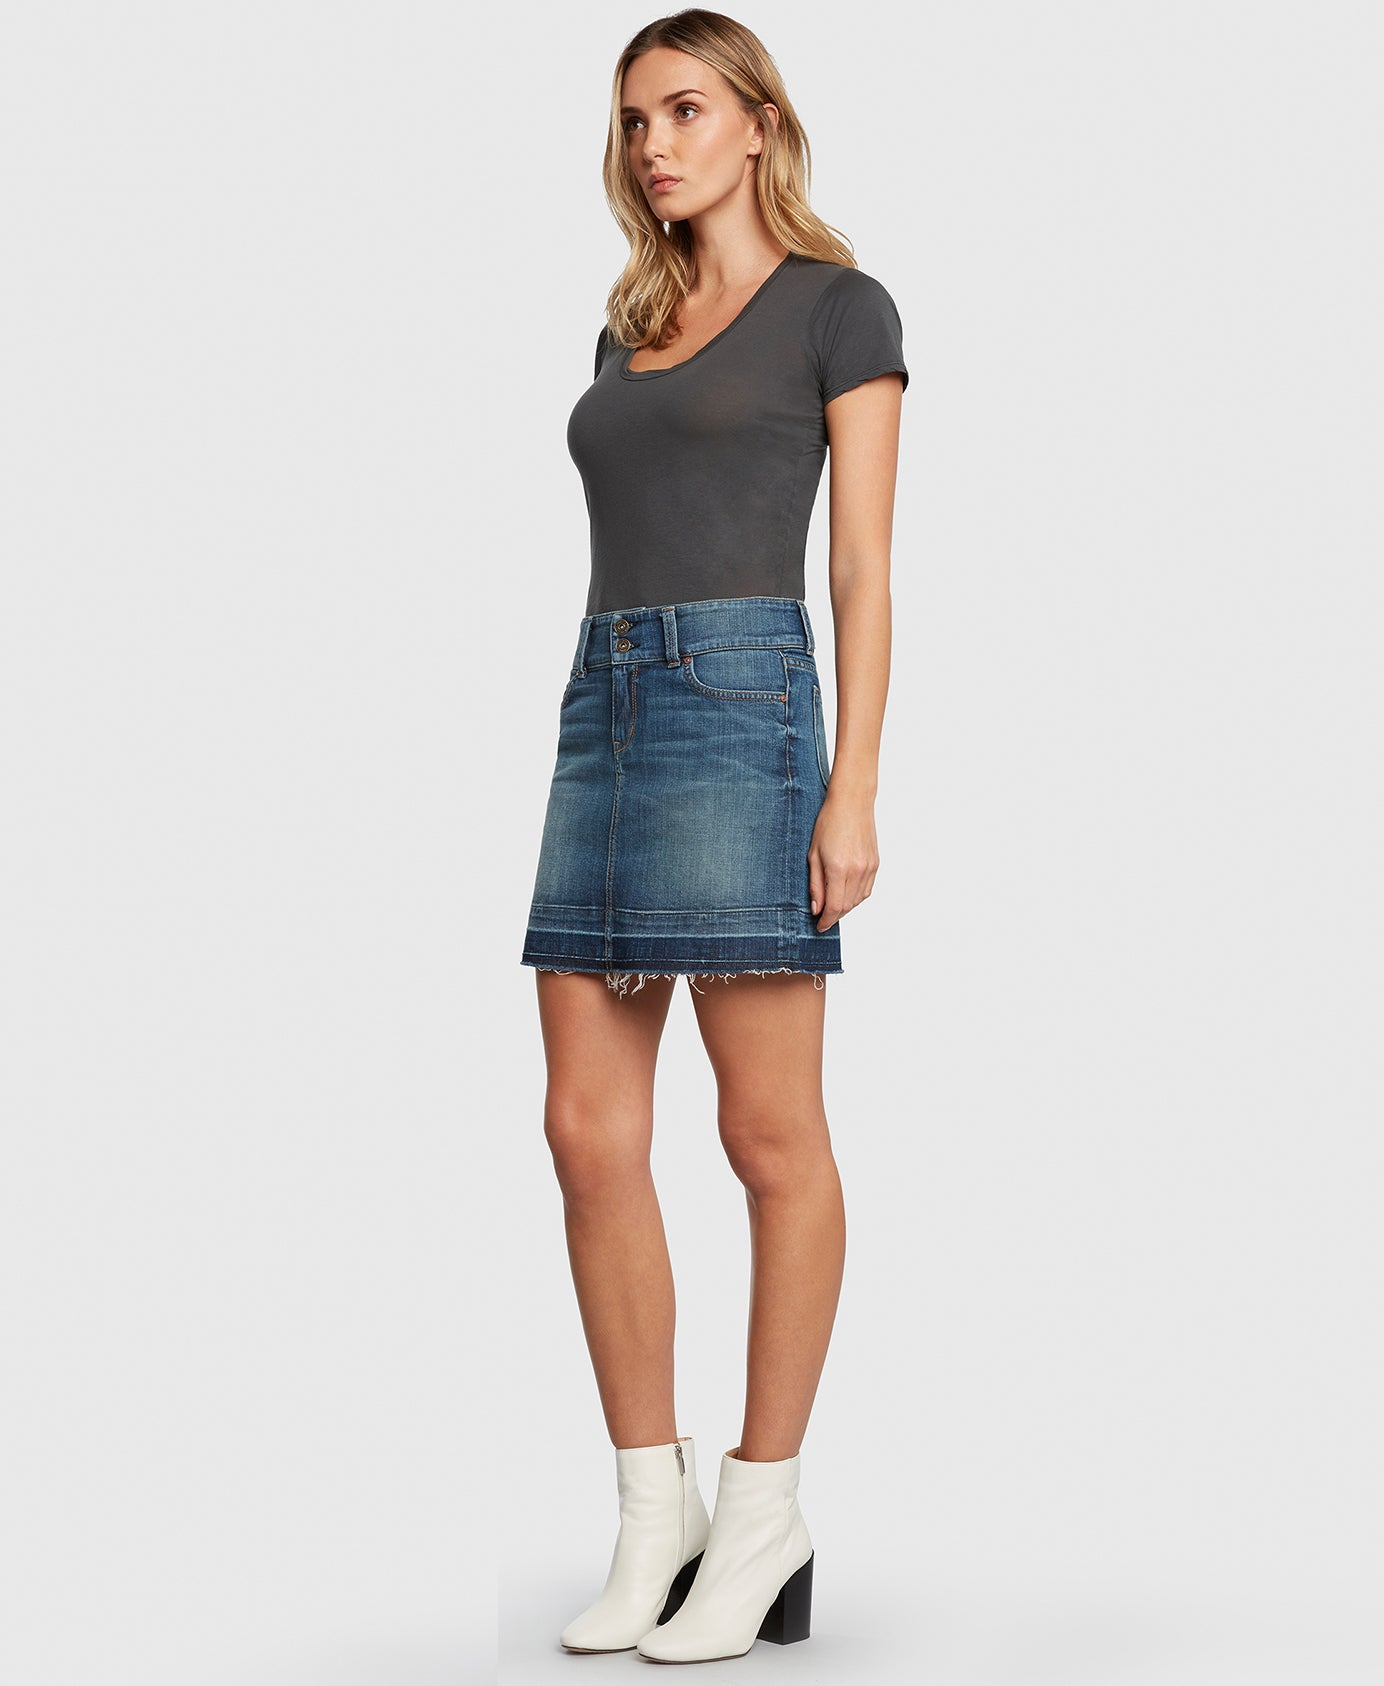 Principle denim skirt with double button waistband side